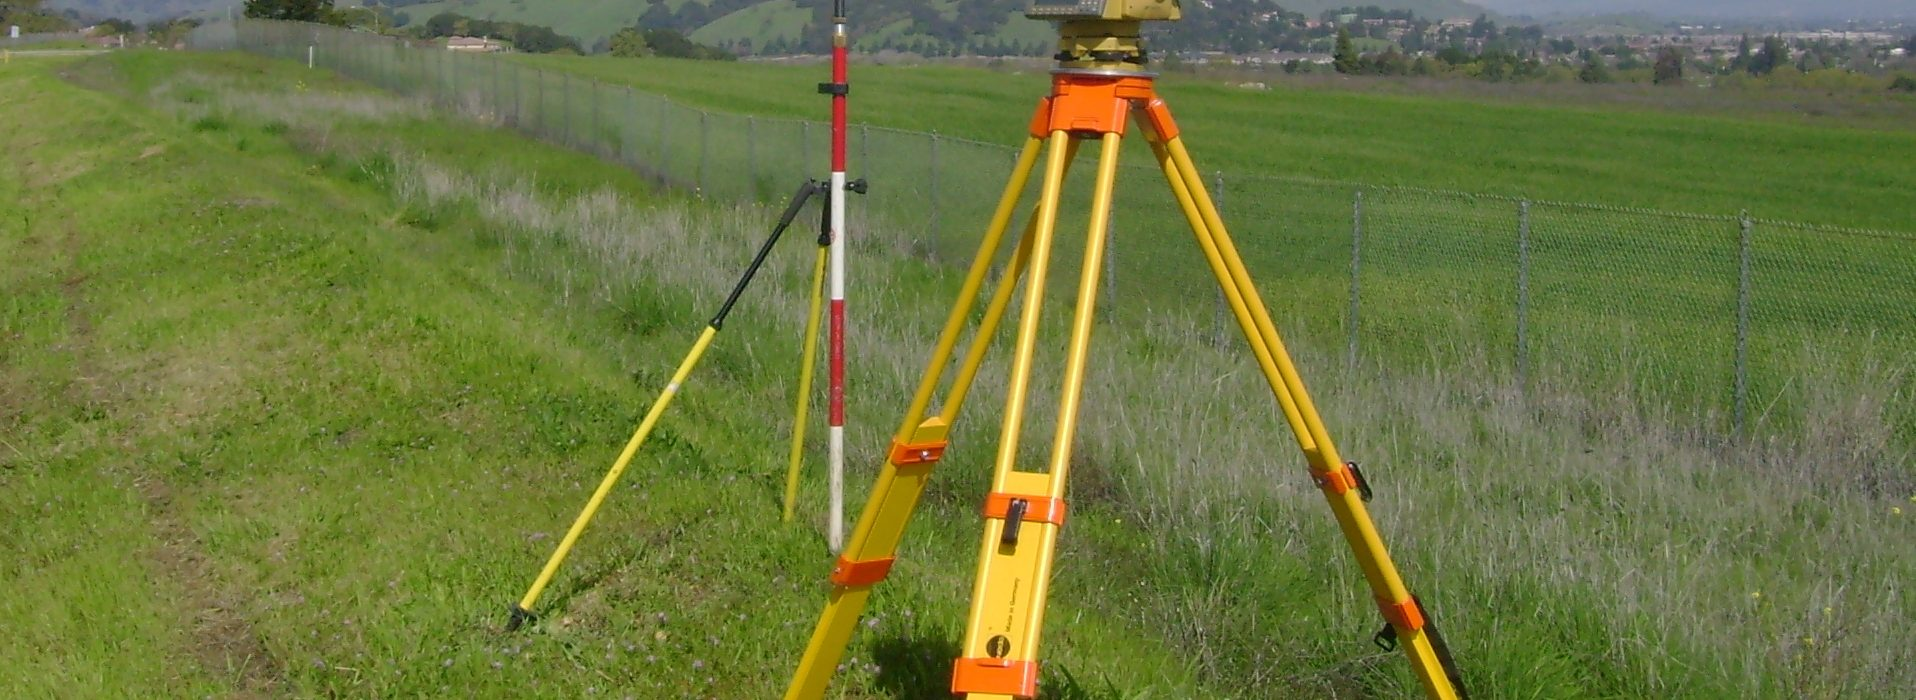 The Importance of Land Surveying